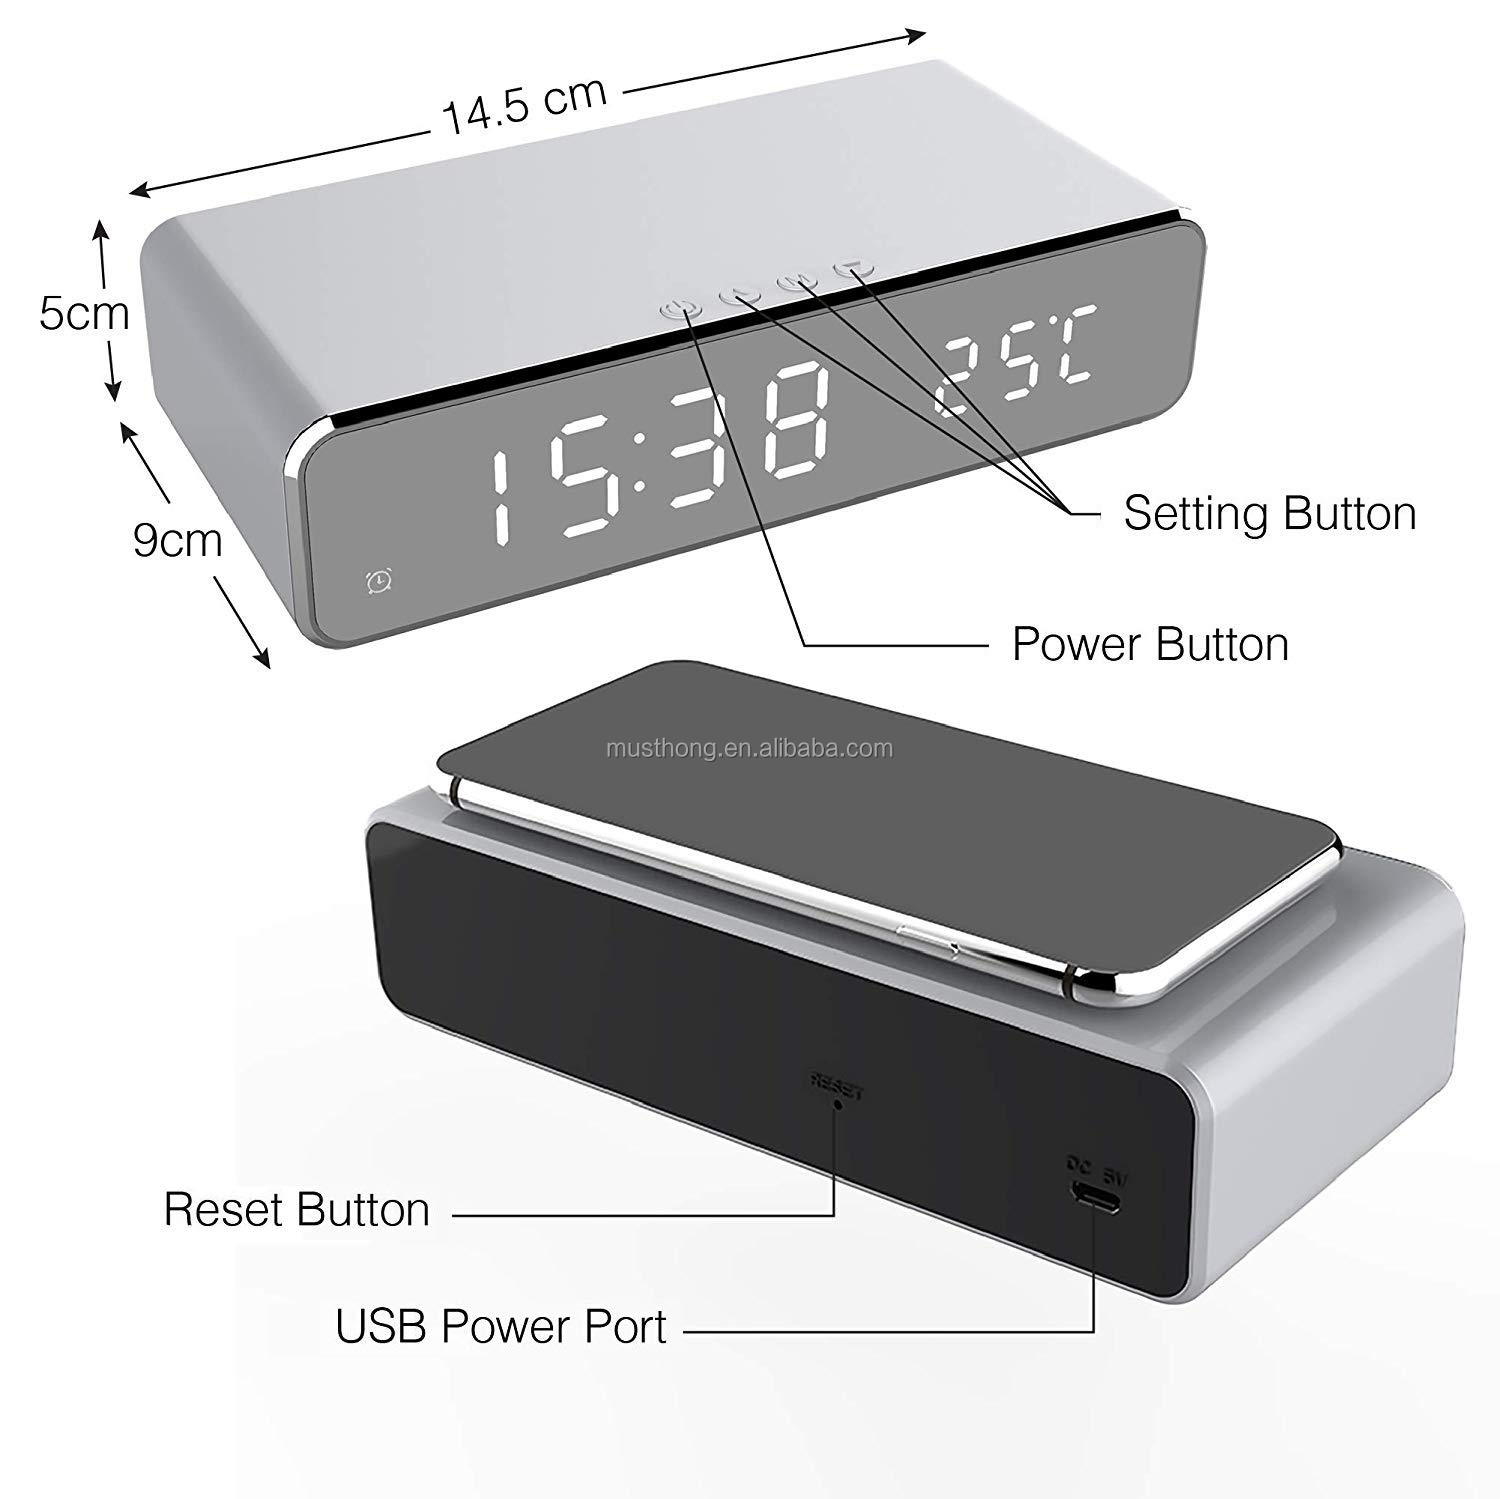 Newest Modern Design Wireless Charging Alarm Clock and Desktop Thermometer Portable LED Digital Display Mirror Clock